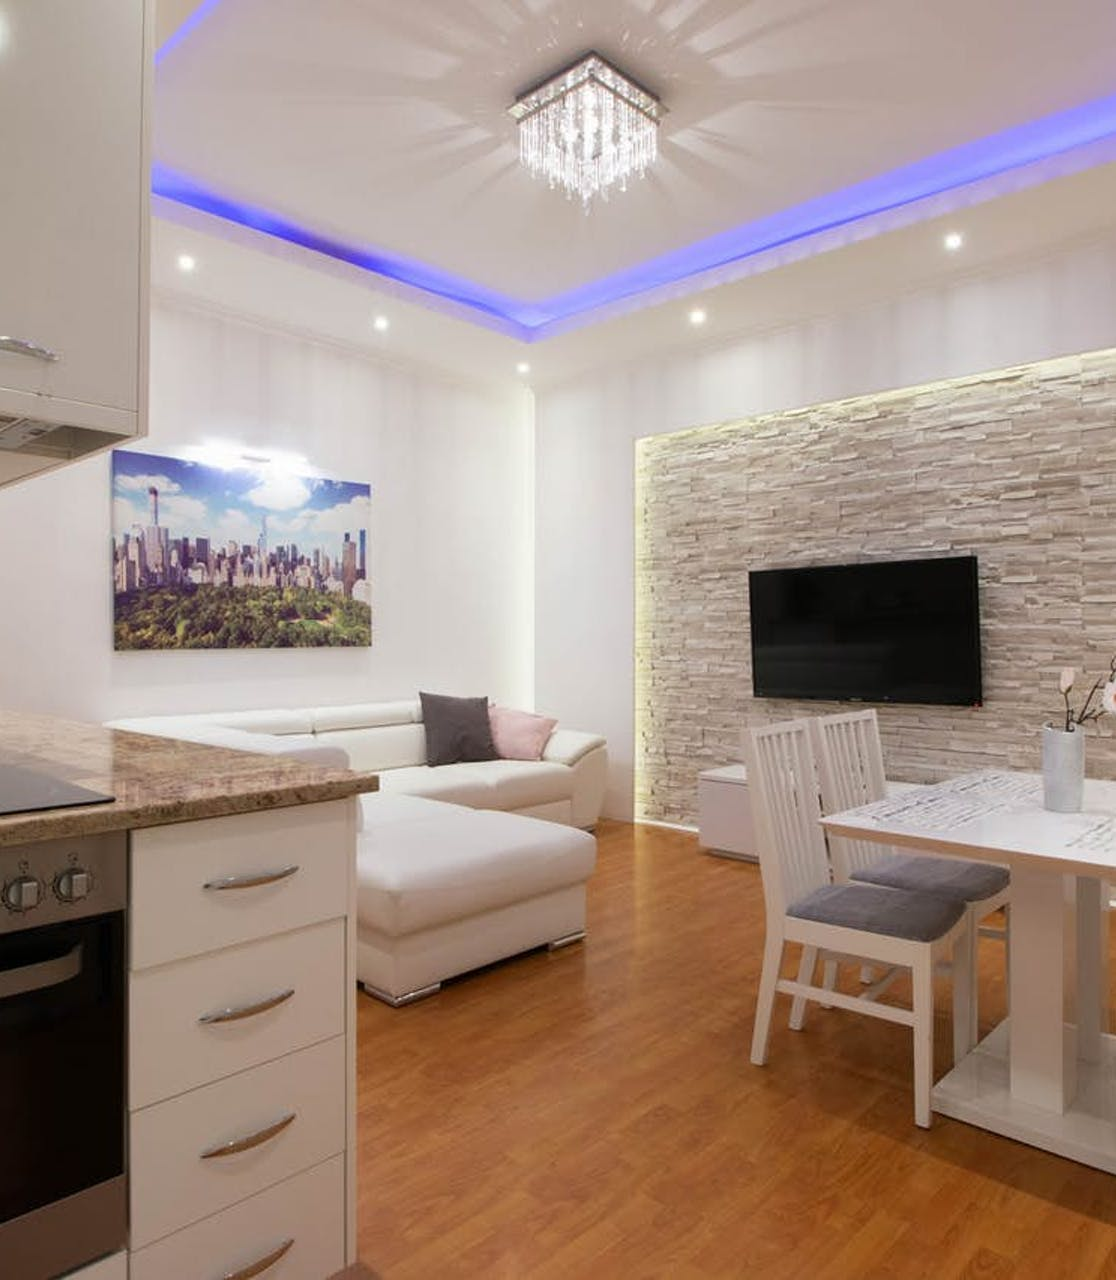 kitchen and living area of vacation rental in Budapest, Central Hungary